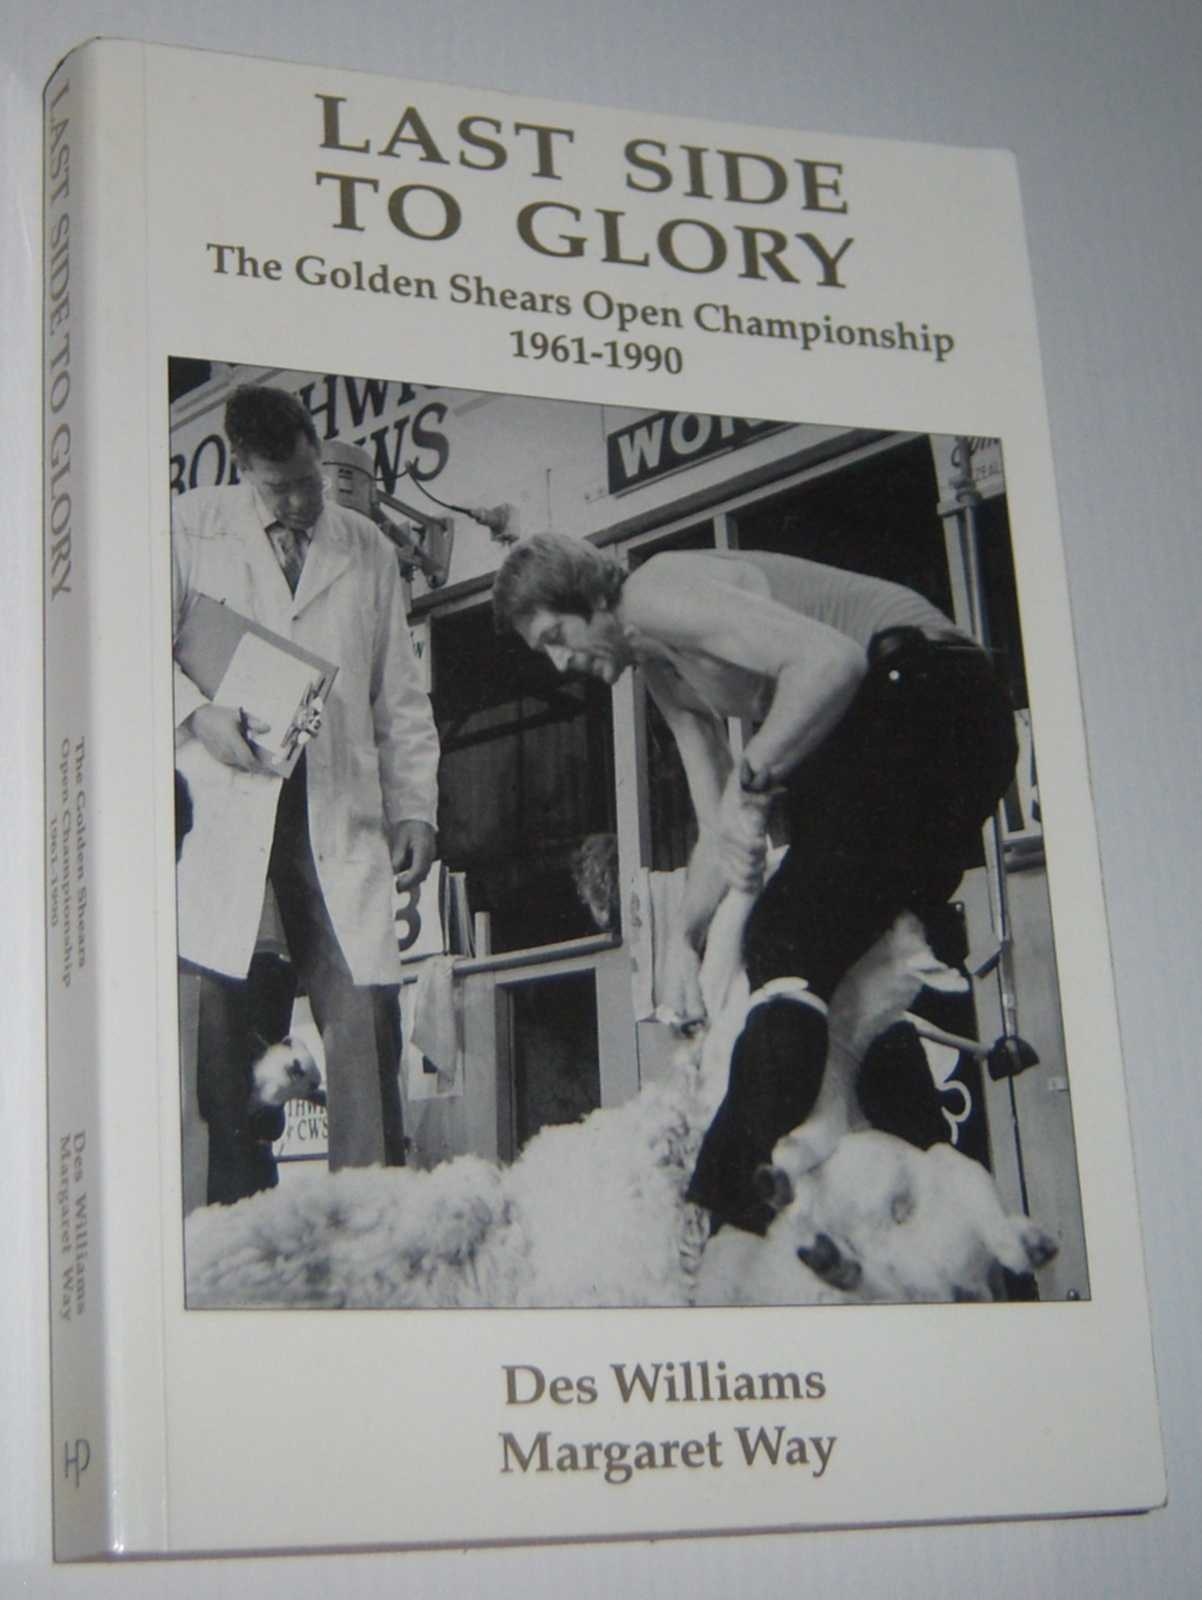 LAST SIDE TO GLORY: The Golden Shears Open Championship 1961-1990 (Signed Copy)